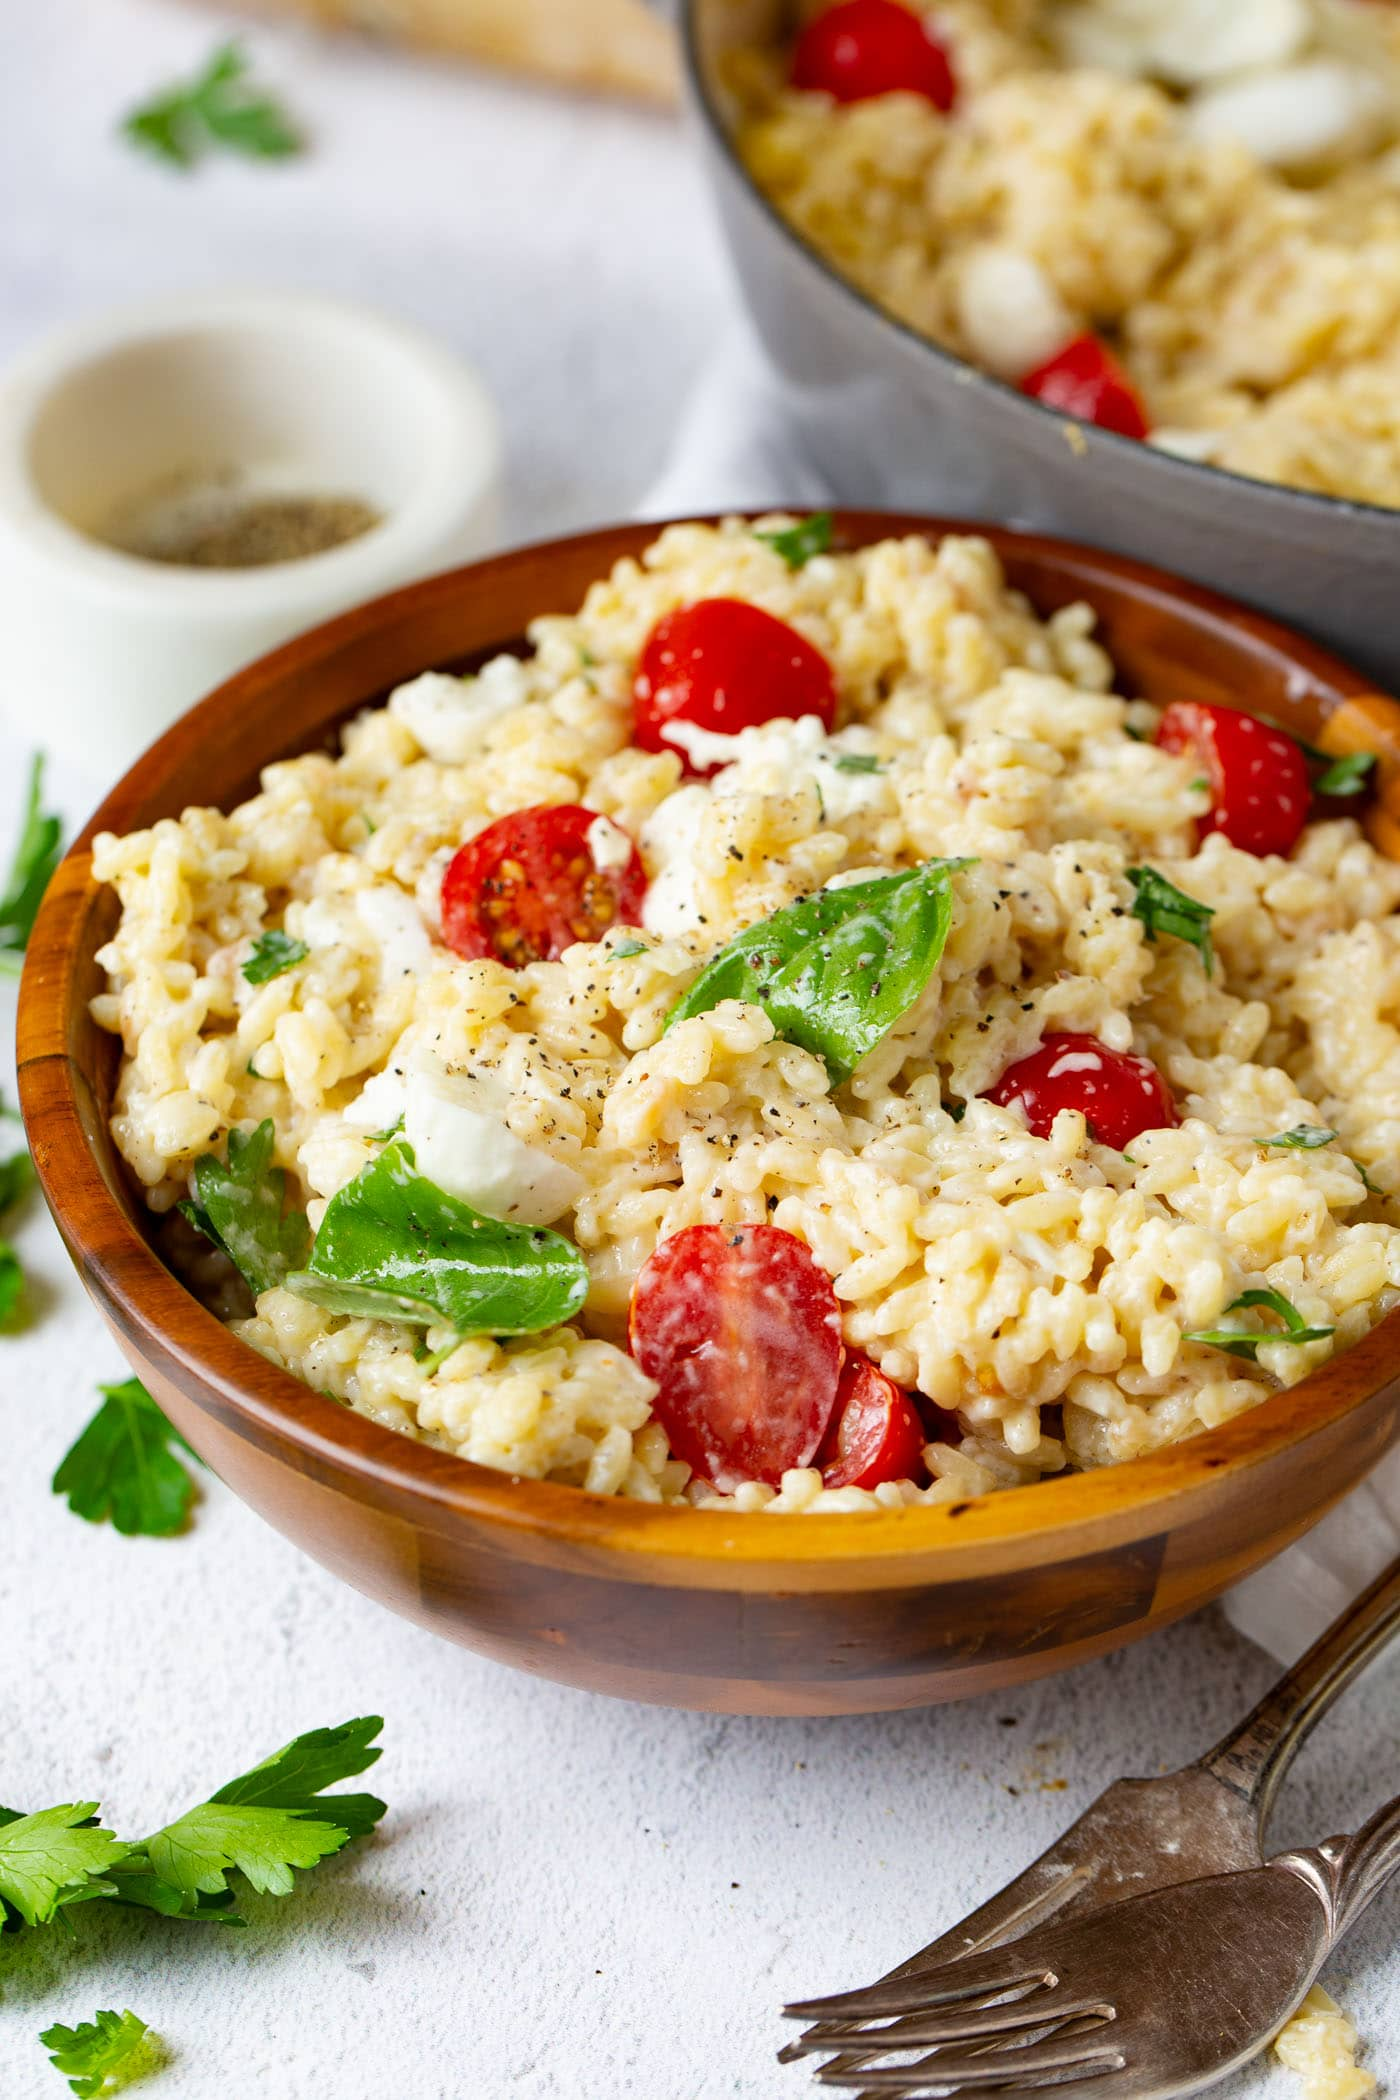 A serving bowl of caprese orzo salad. The salad contains tomatoes, mozzarella chuncks and fresh basil. A few basil leaves, tomatoes and a small container of oil are sitting by the salad.